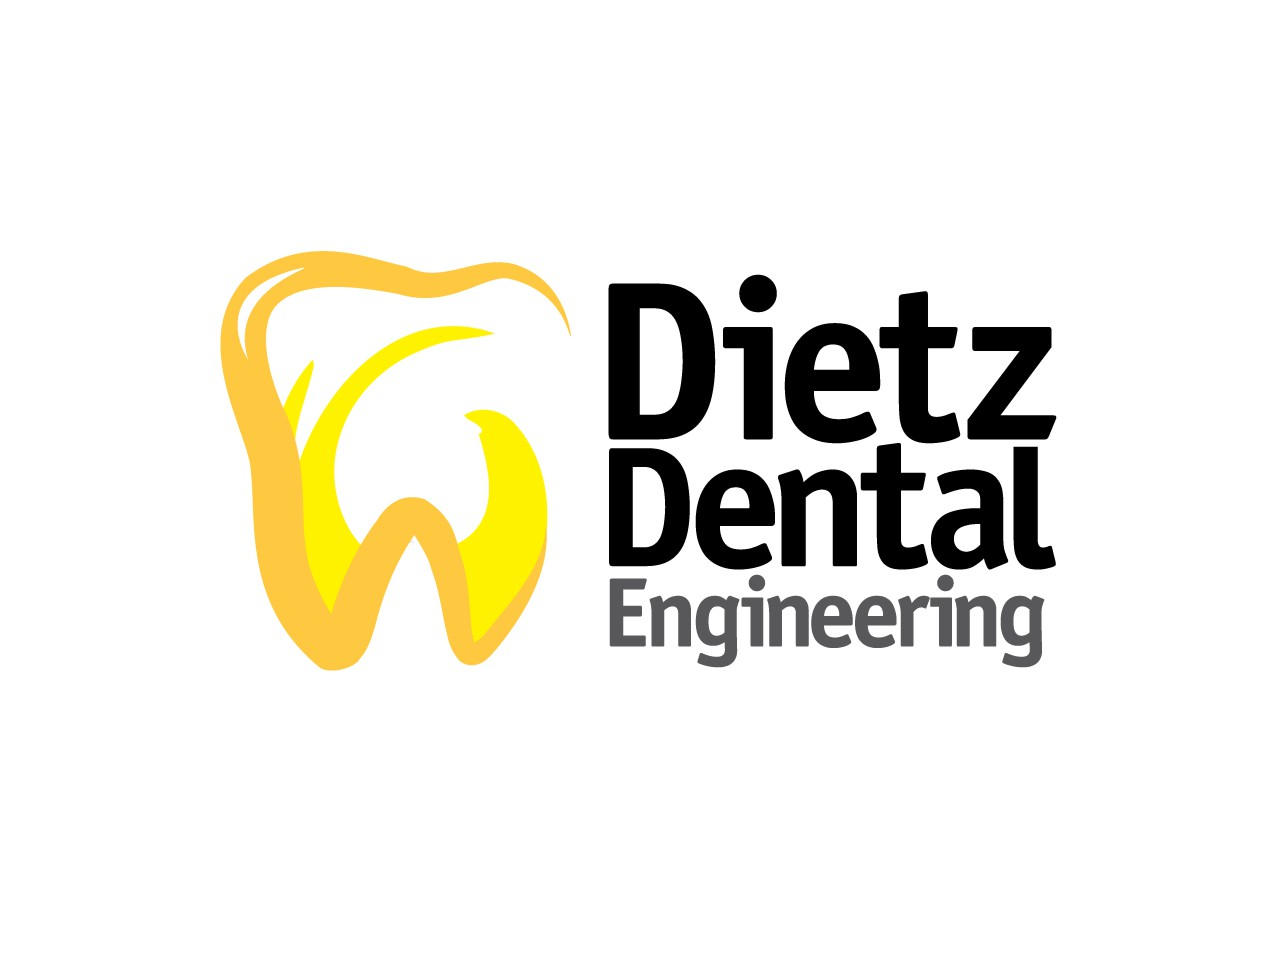 Help Dietz Dental Engineering with a new logo